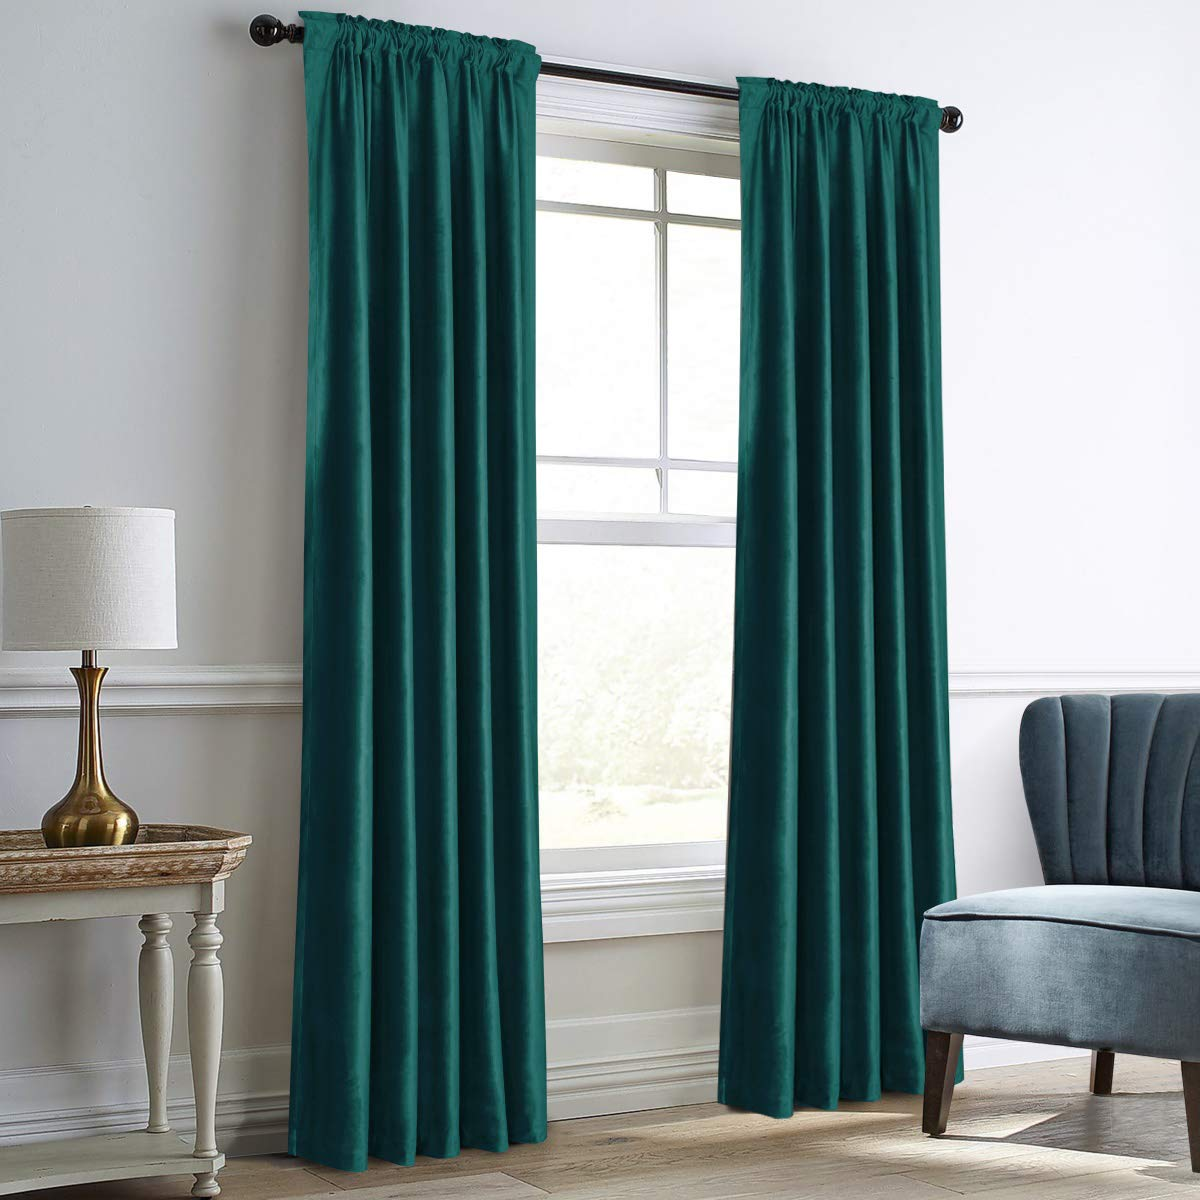 Dreaming Casa Darkening Teal Velvet Curtains for Living Room,Thermal Insulated Rod Pocket/Back Tab Window Curtain for Bedroom(2 Top Construction Combination,52'' Wx84 L) by Dreaming Casa